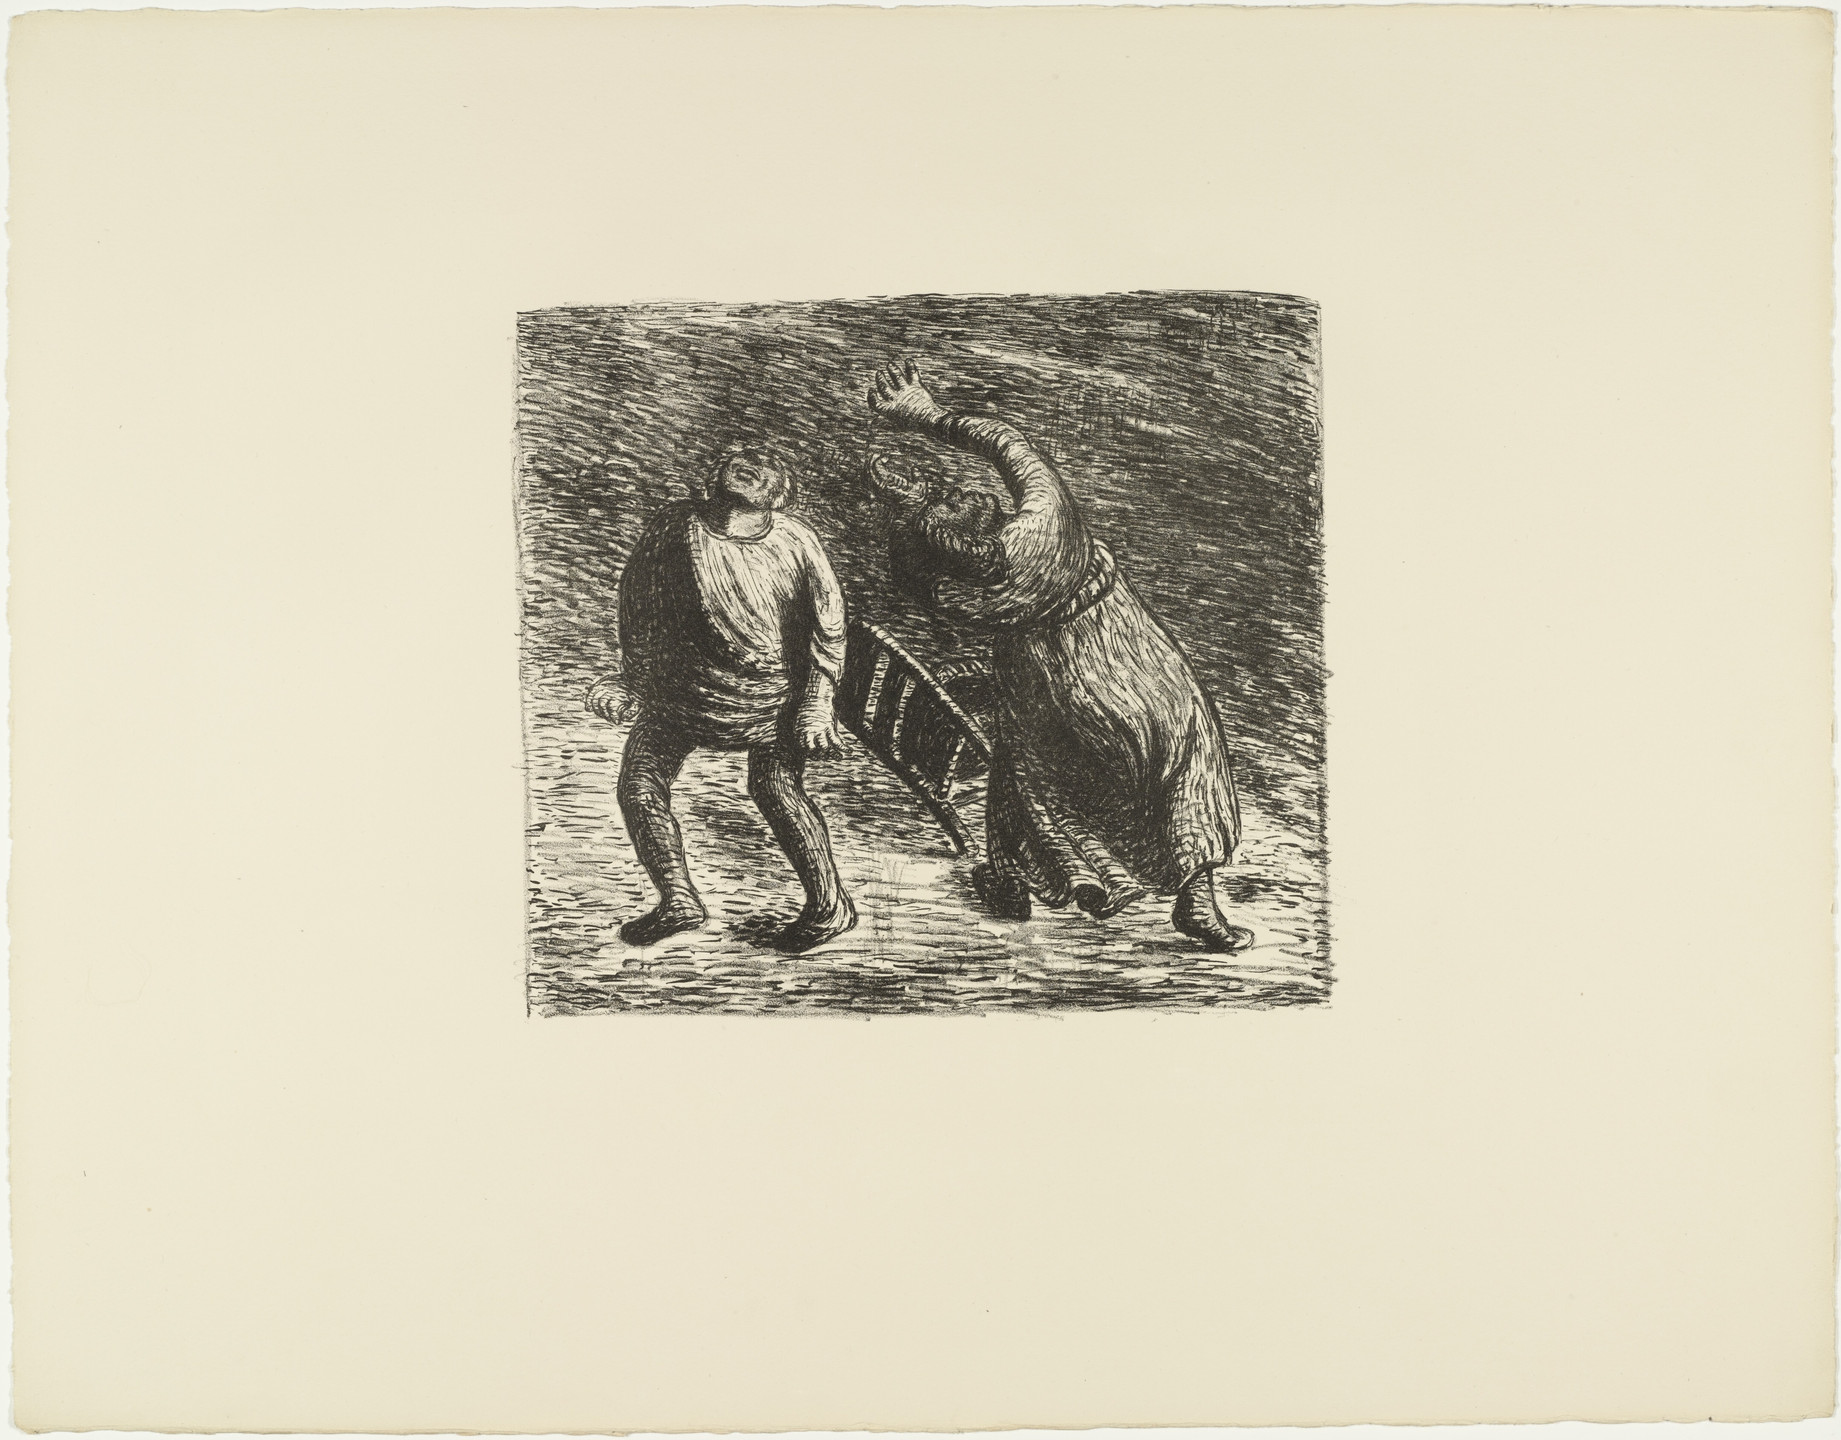 Ernst Barlach. The Invisible 2 (Das Unsichtbare 2) from The Dead Day (Der Tote Tag). 1910-11, published 1912